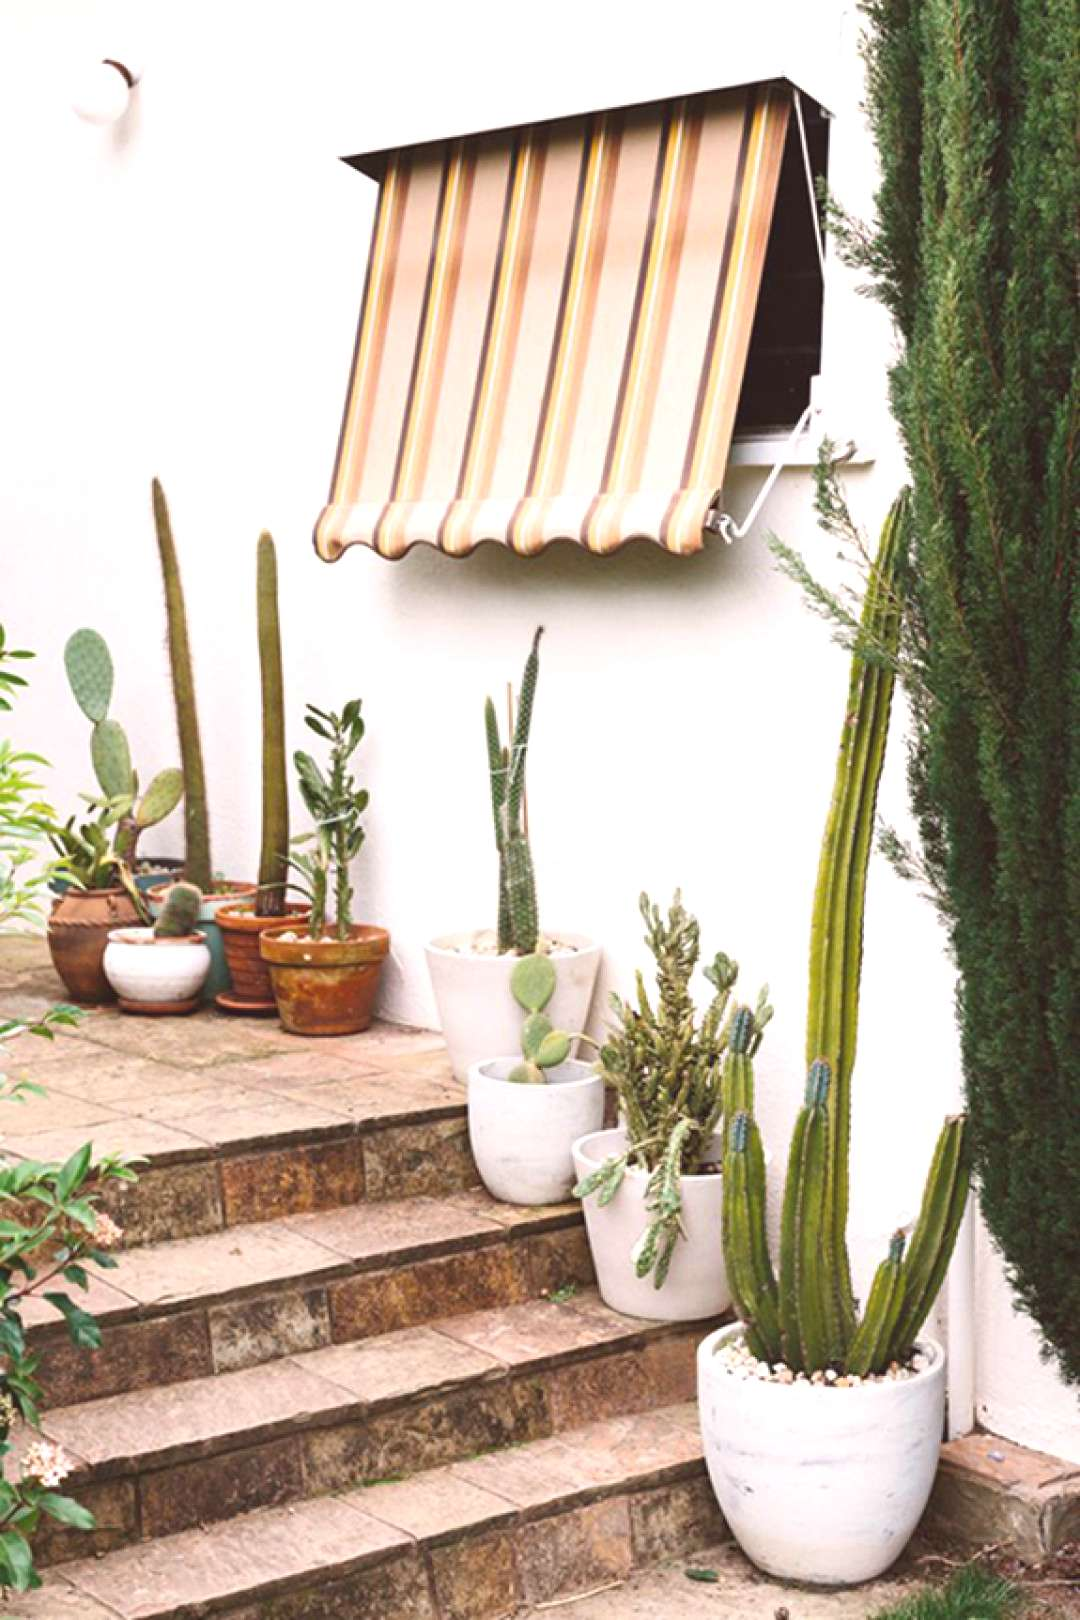 retro striped outdoor awning over stairs with potted cacti.